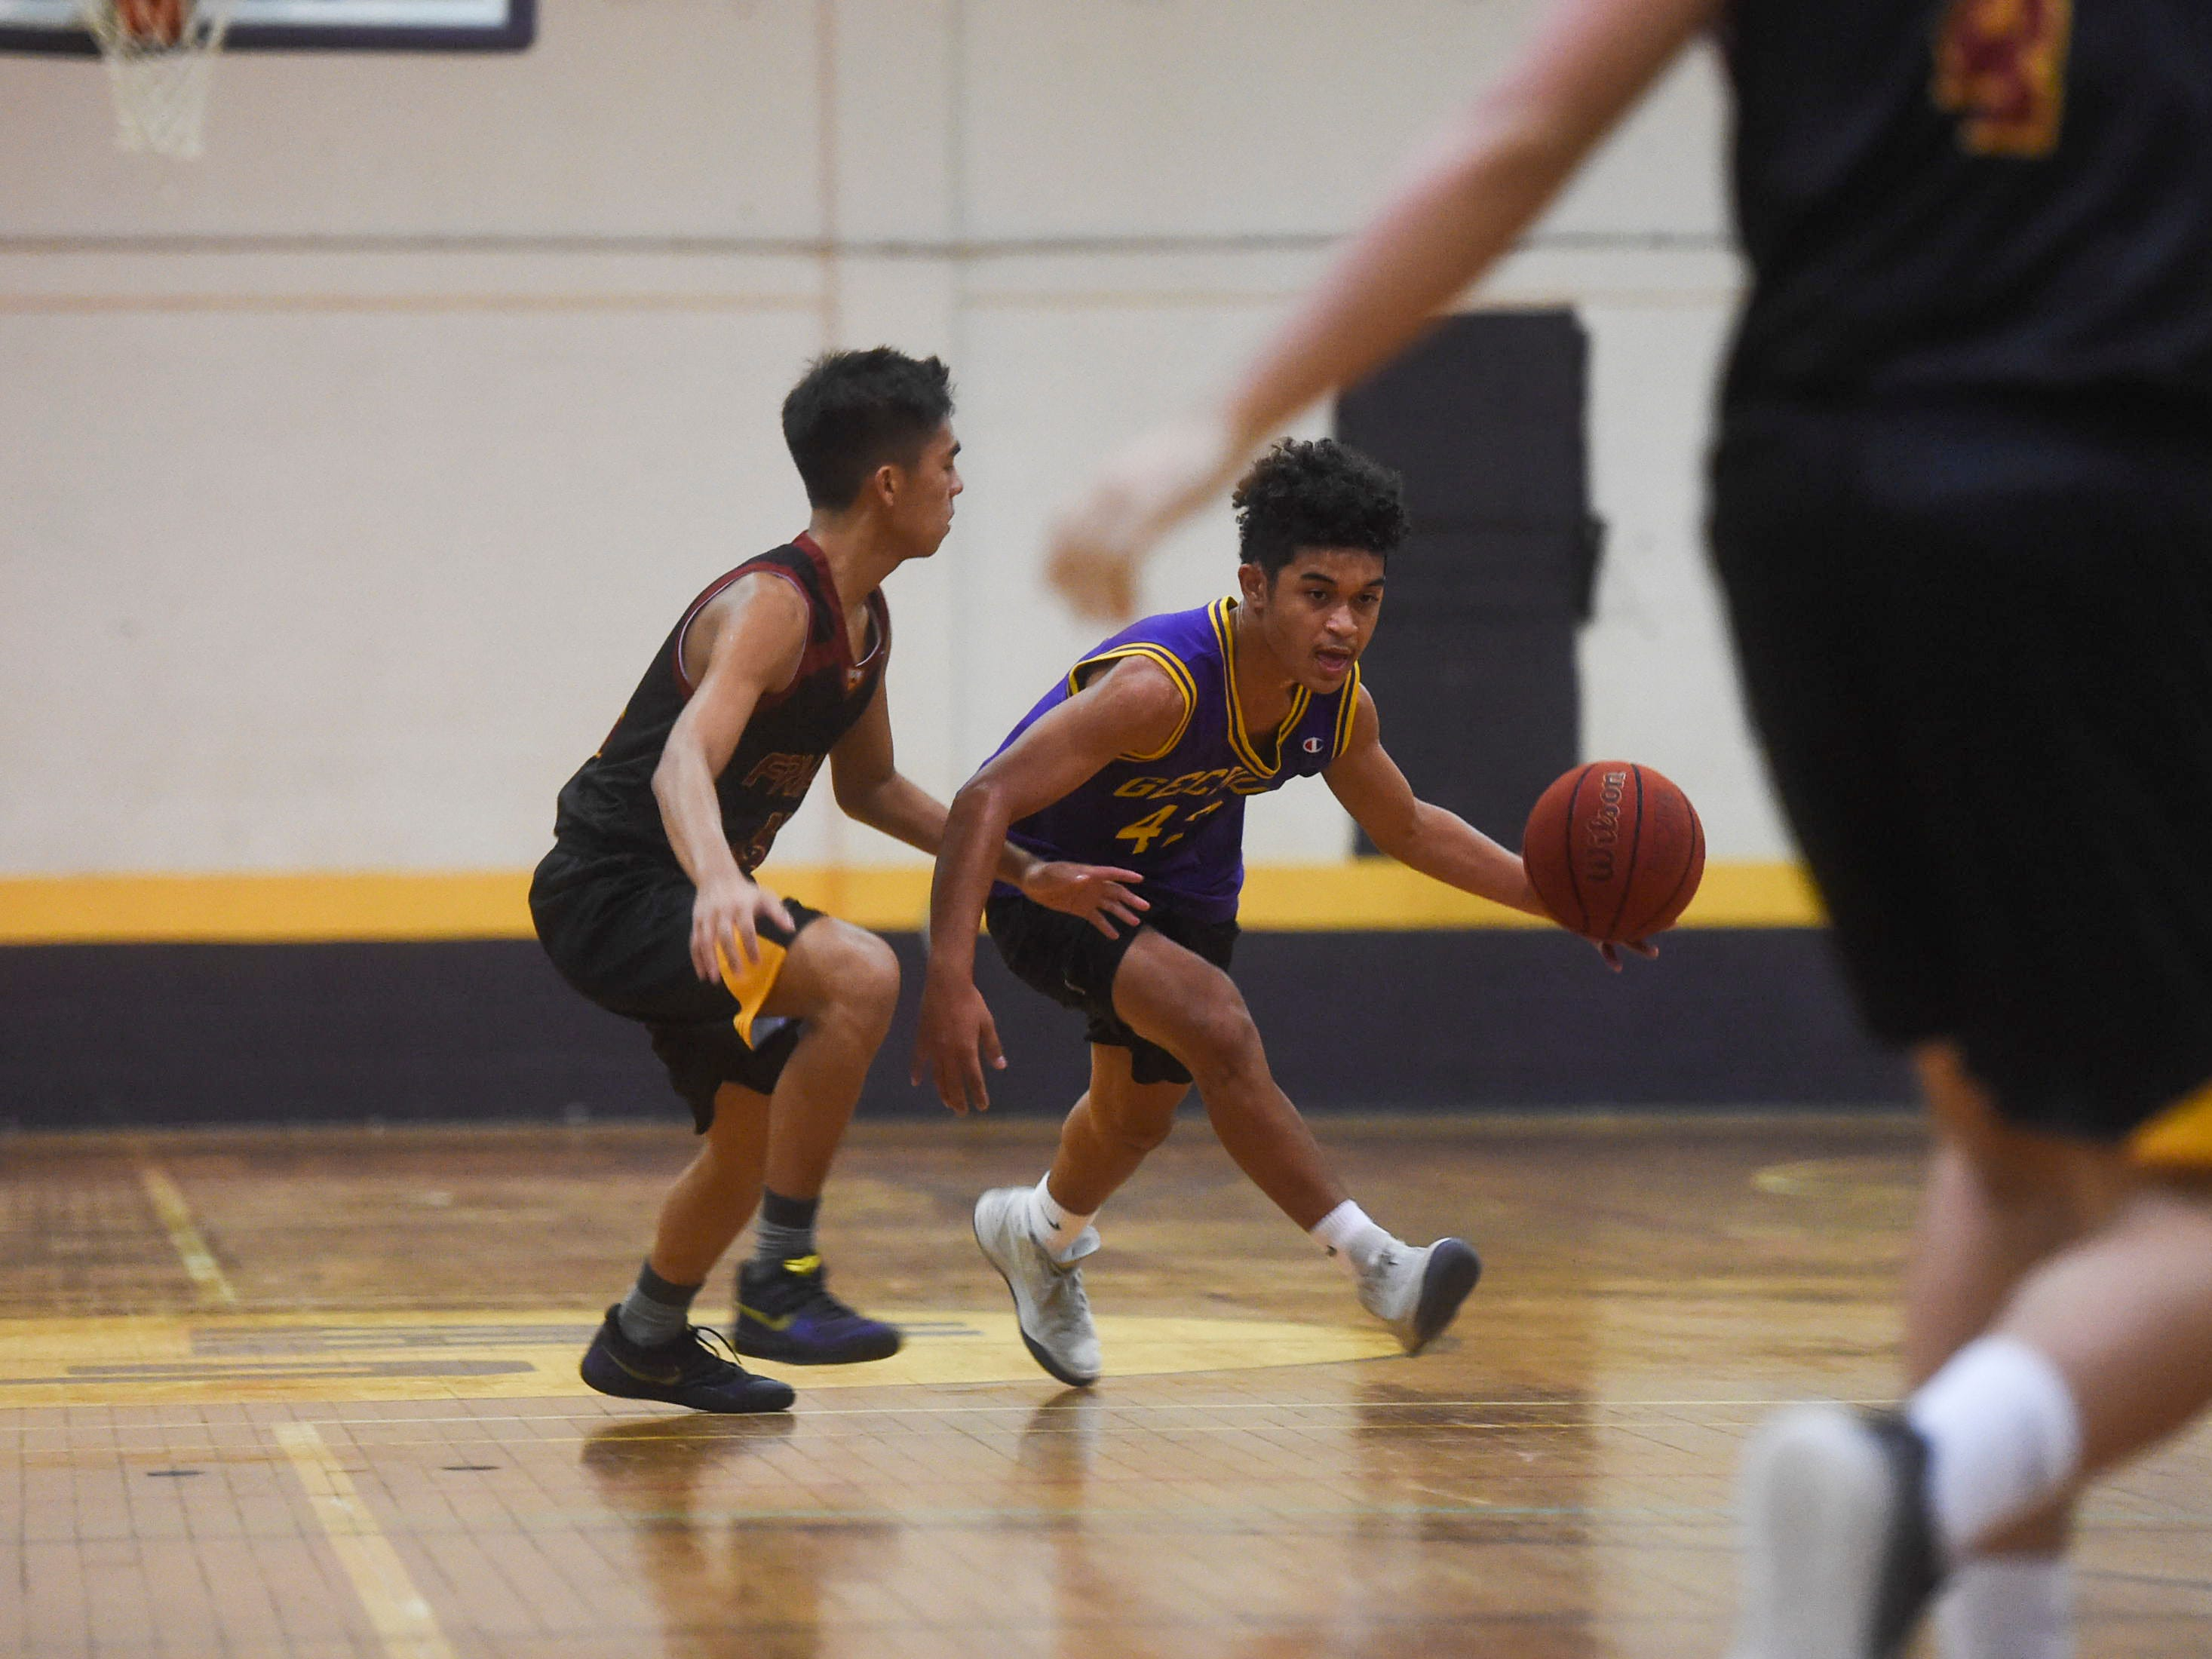 George Washington's Josh Sebastian brings the ball downcourt against the Father Duenas Friars during their Independent Interscholastic Athletic Association of Guam Boys' Basketball game at the GW High School gym, Jan. 19, 2019. The Friars came through with a 52-69 comeback victory over the Geckos after trailing in the first half.